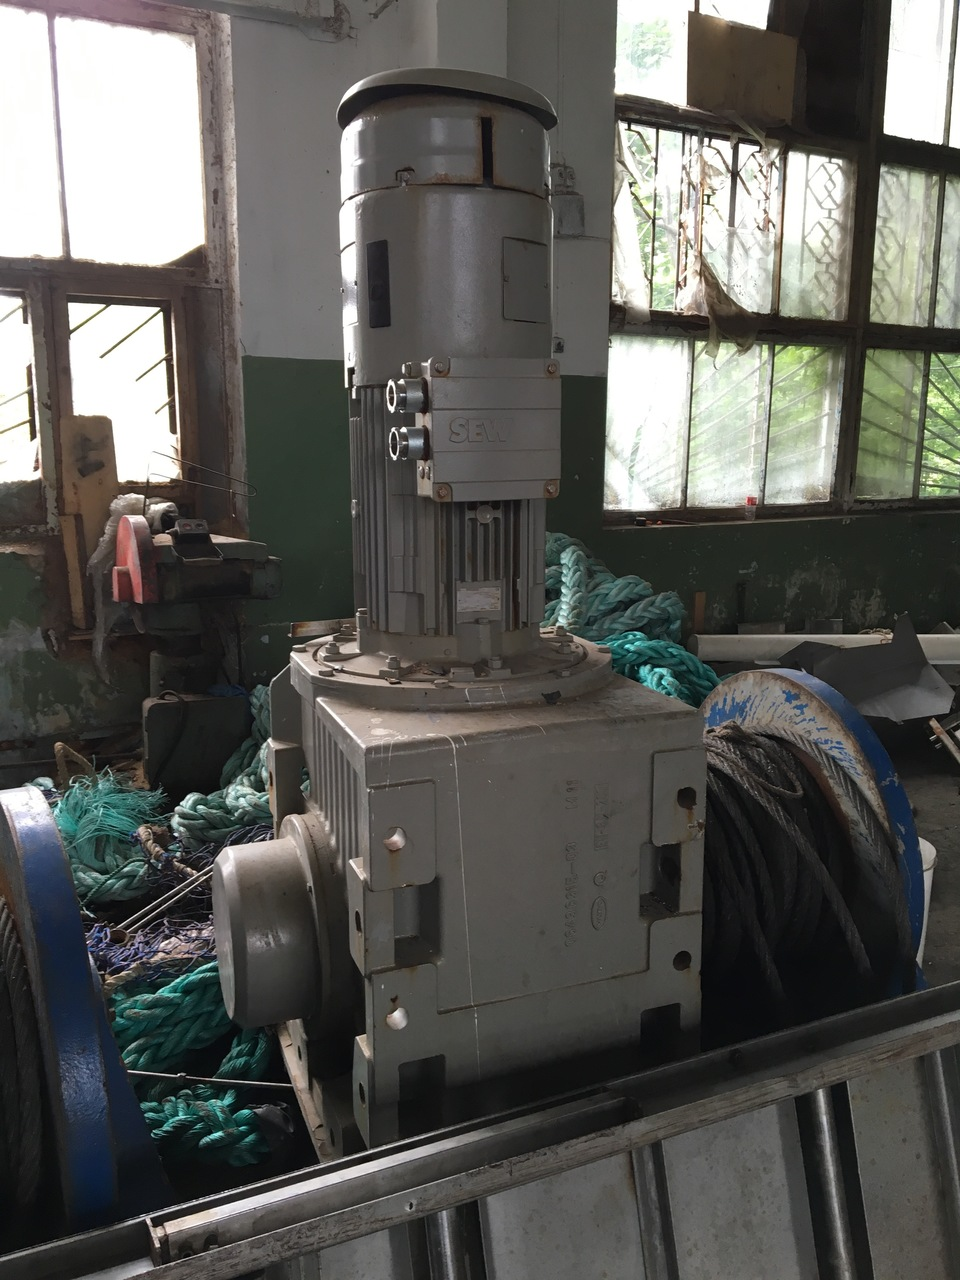 Sew Eurodrive winch for trawl